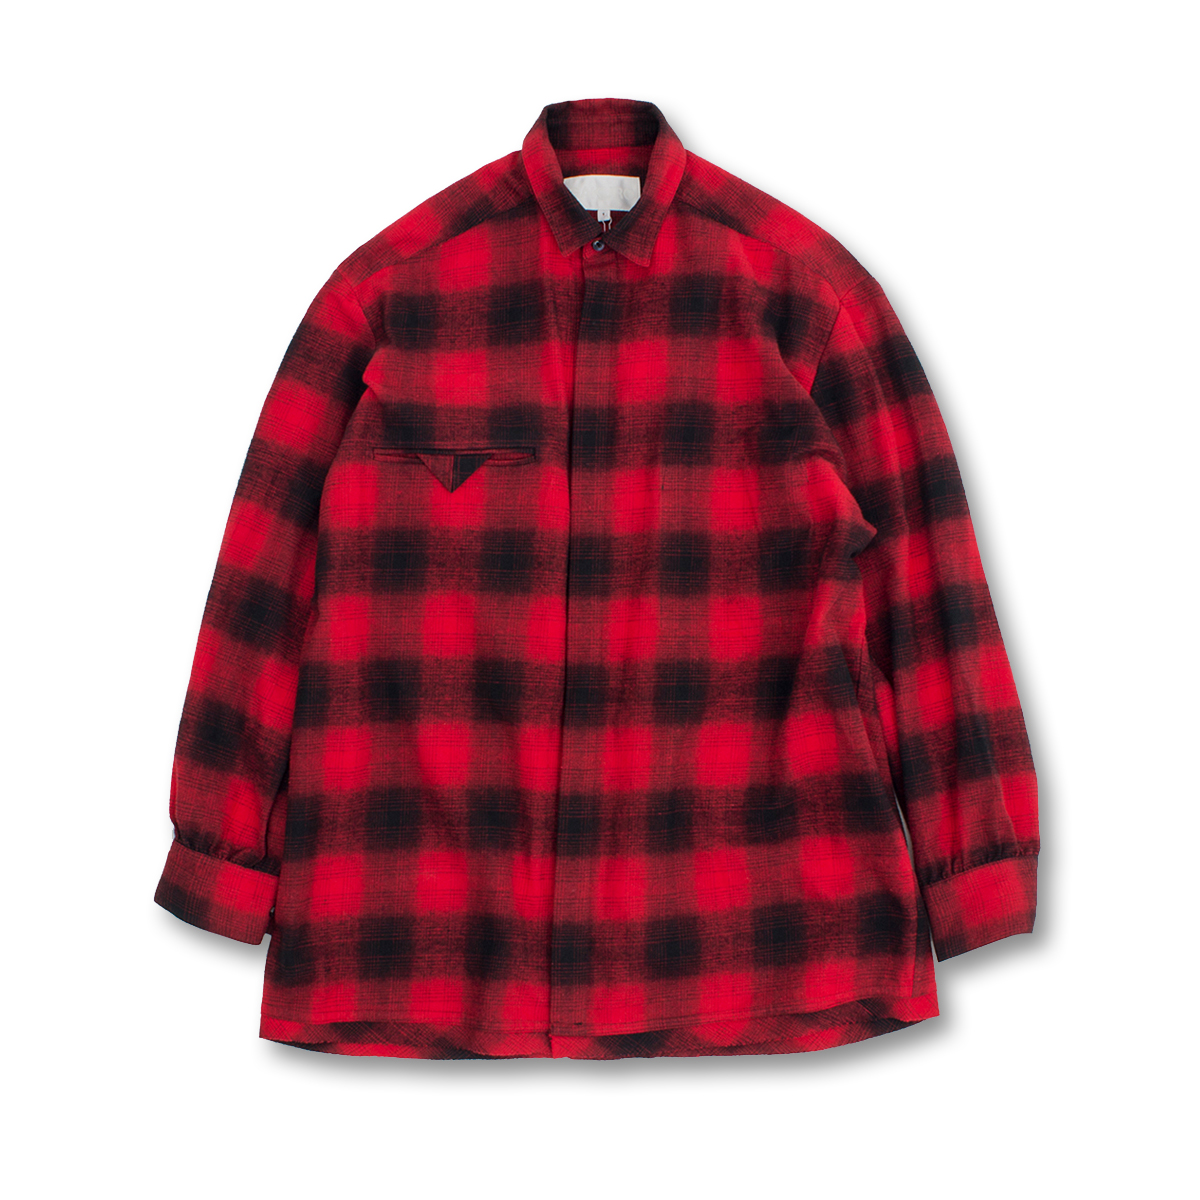 [GAKURO] SHIRING SHIRT 'RED OMBRE CHECK'